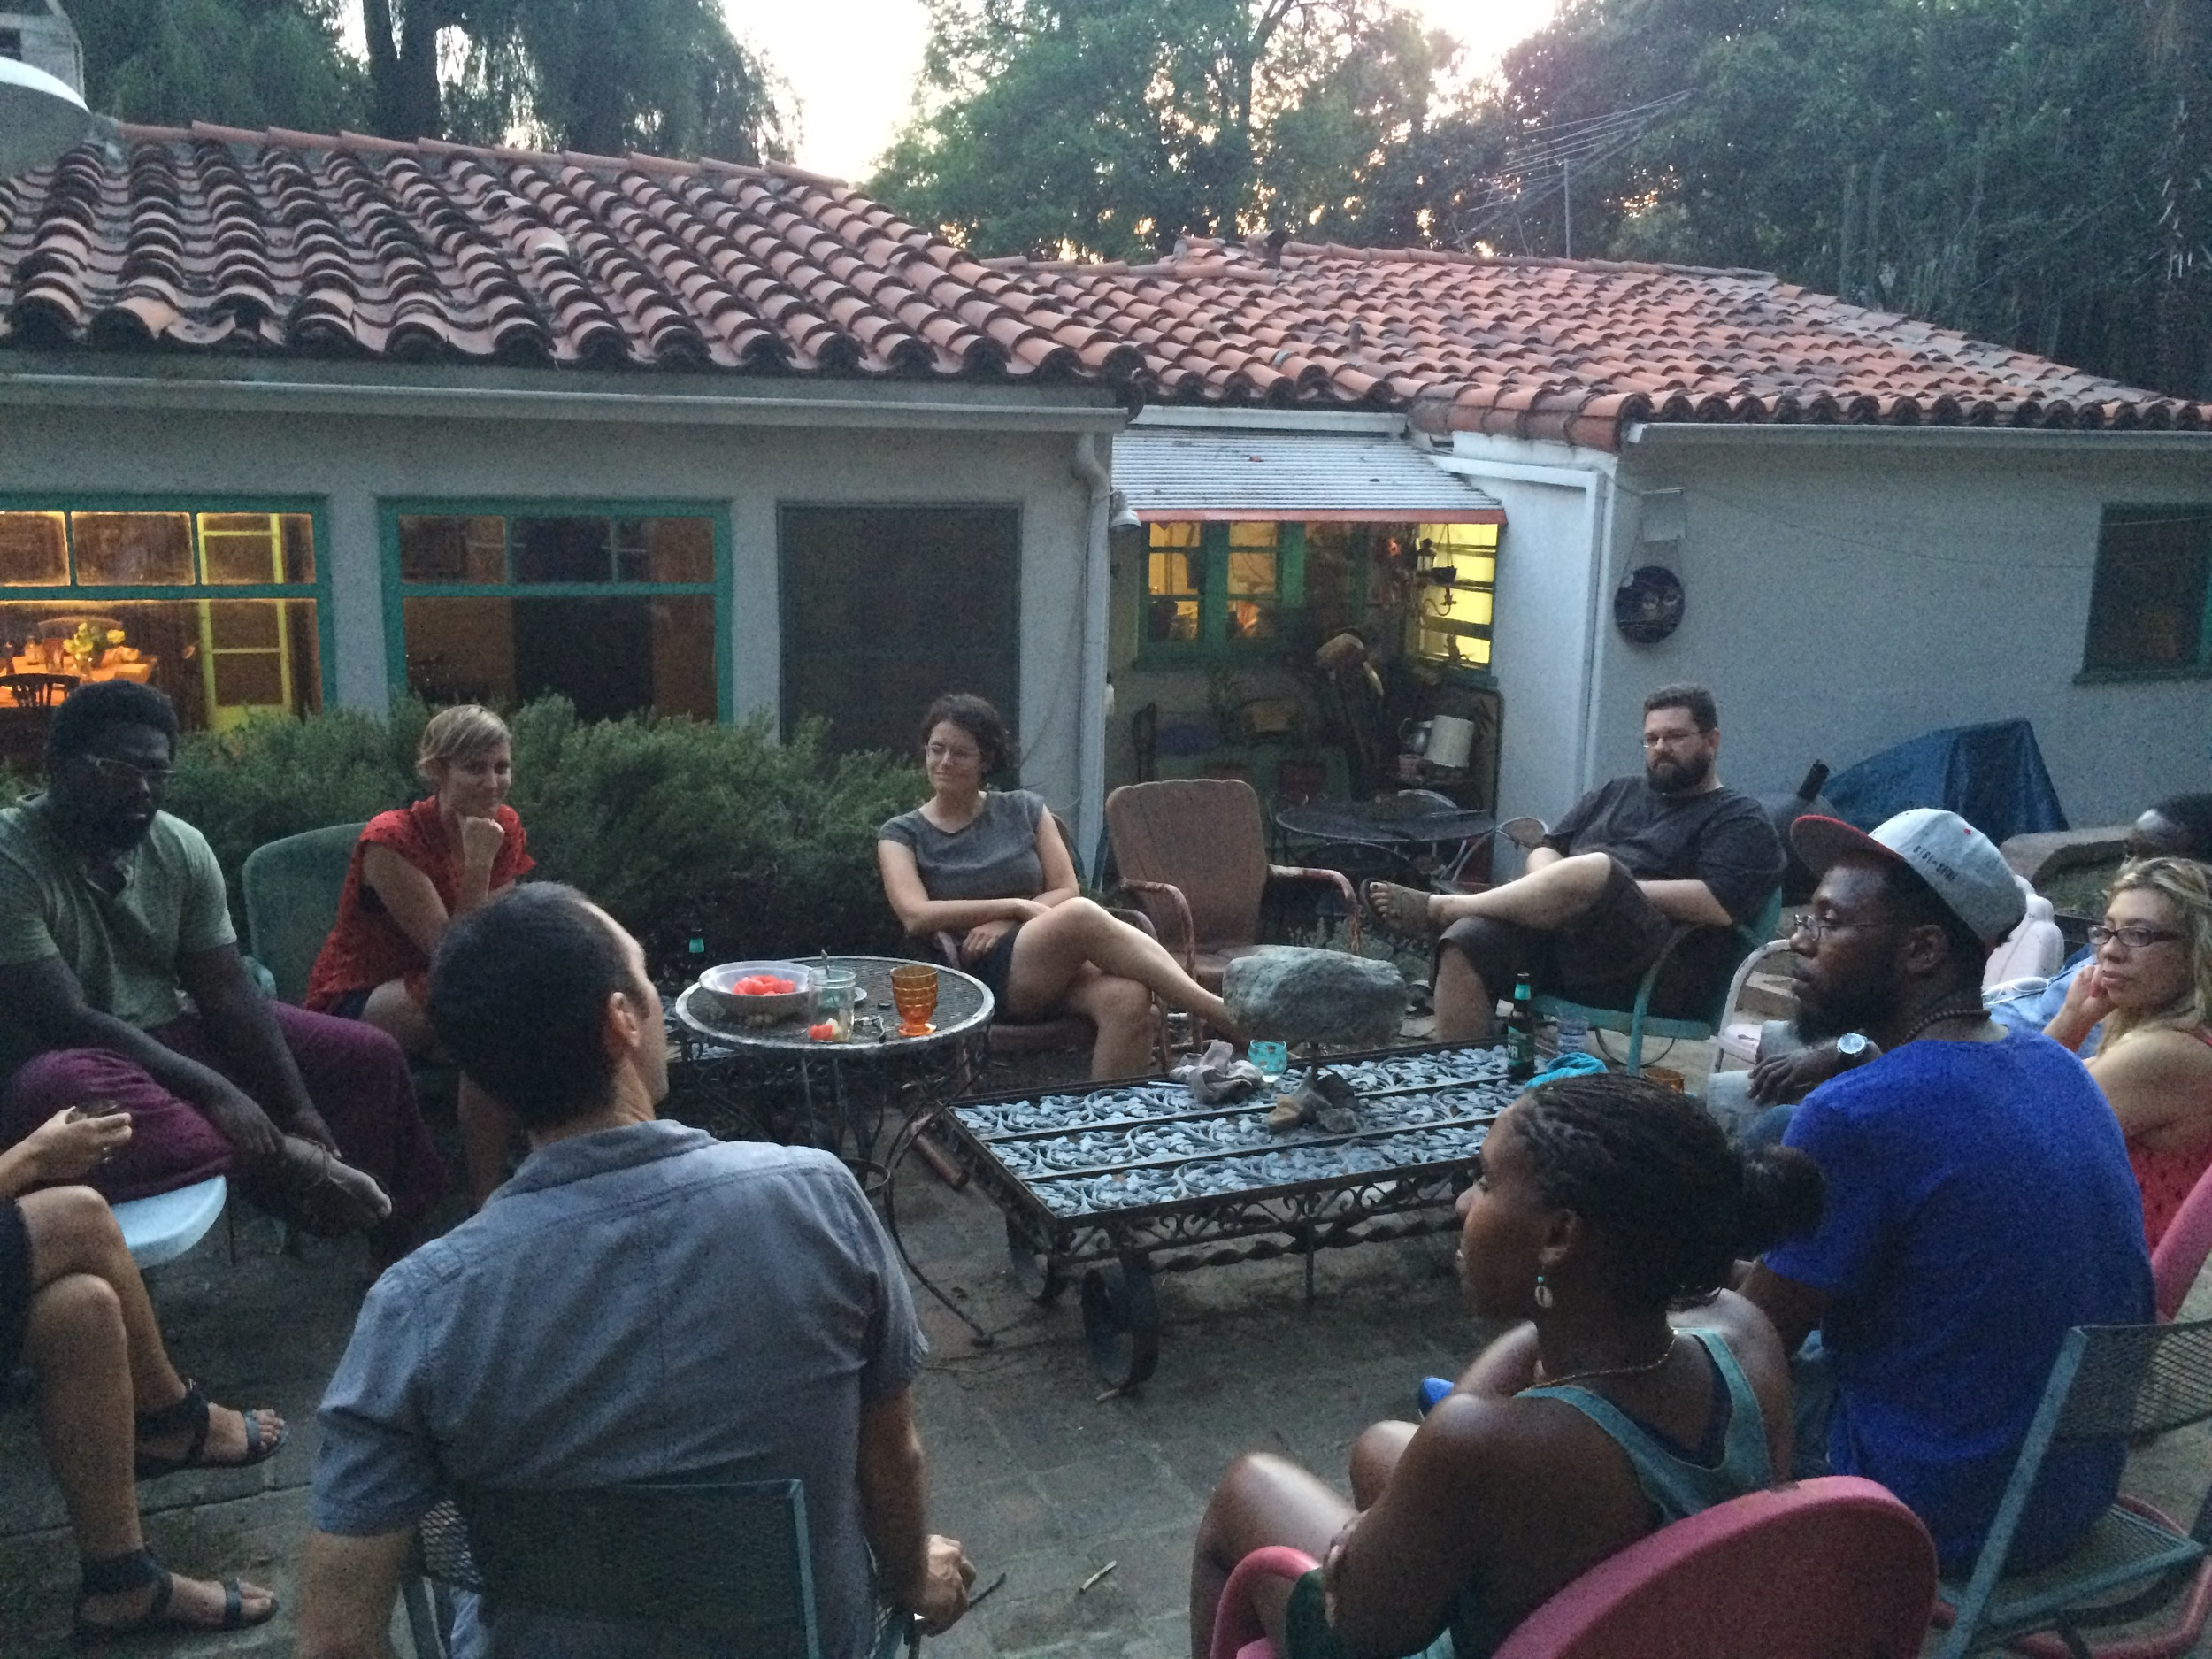 photo from the August Gathering, by Leah Laird